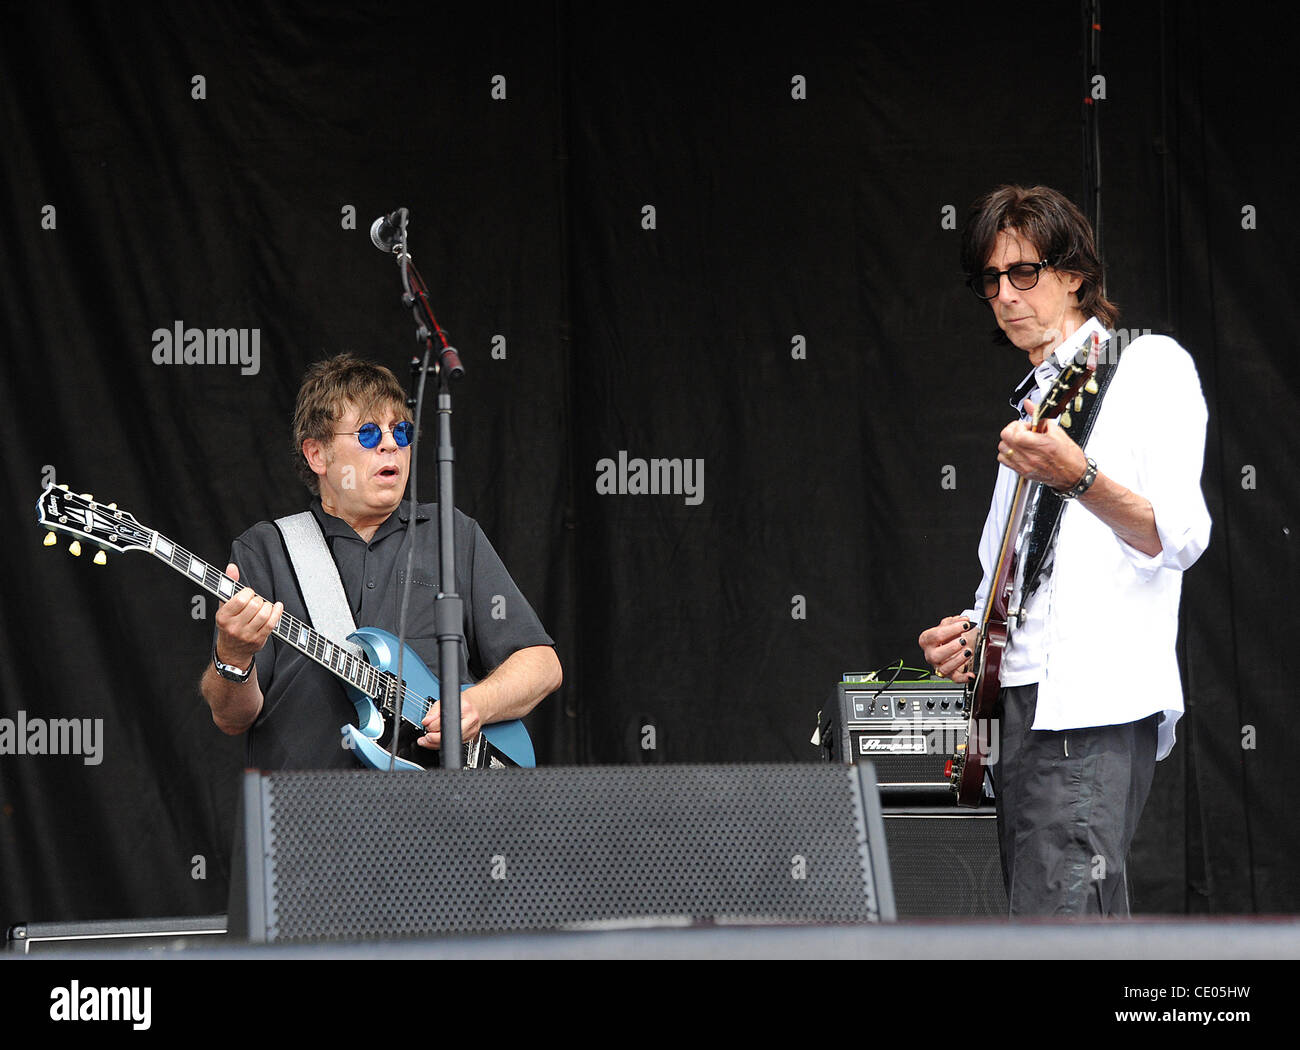 Aug 7, 2011 - Chicago, Illinois; USA - Musician RICK OCASEK and Guitarist ELLIOT EASTON of The Cars performs live - Stock Image